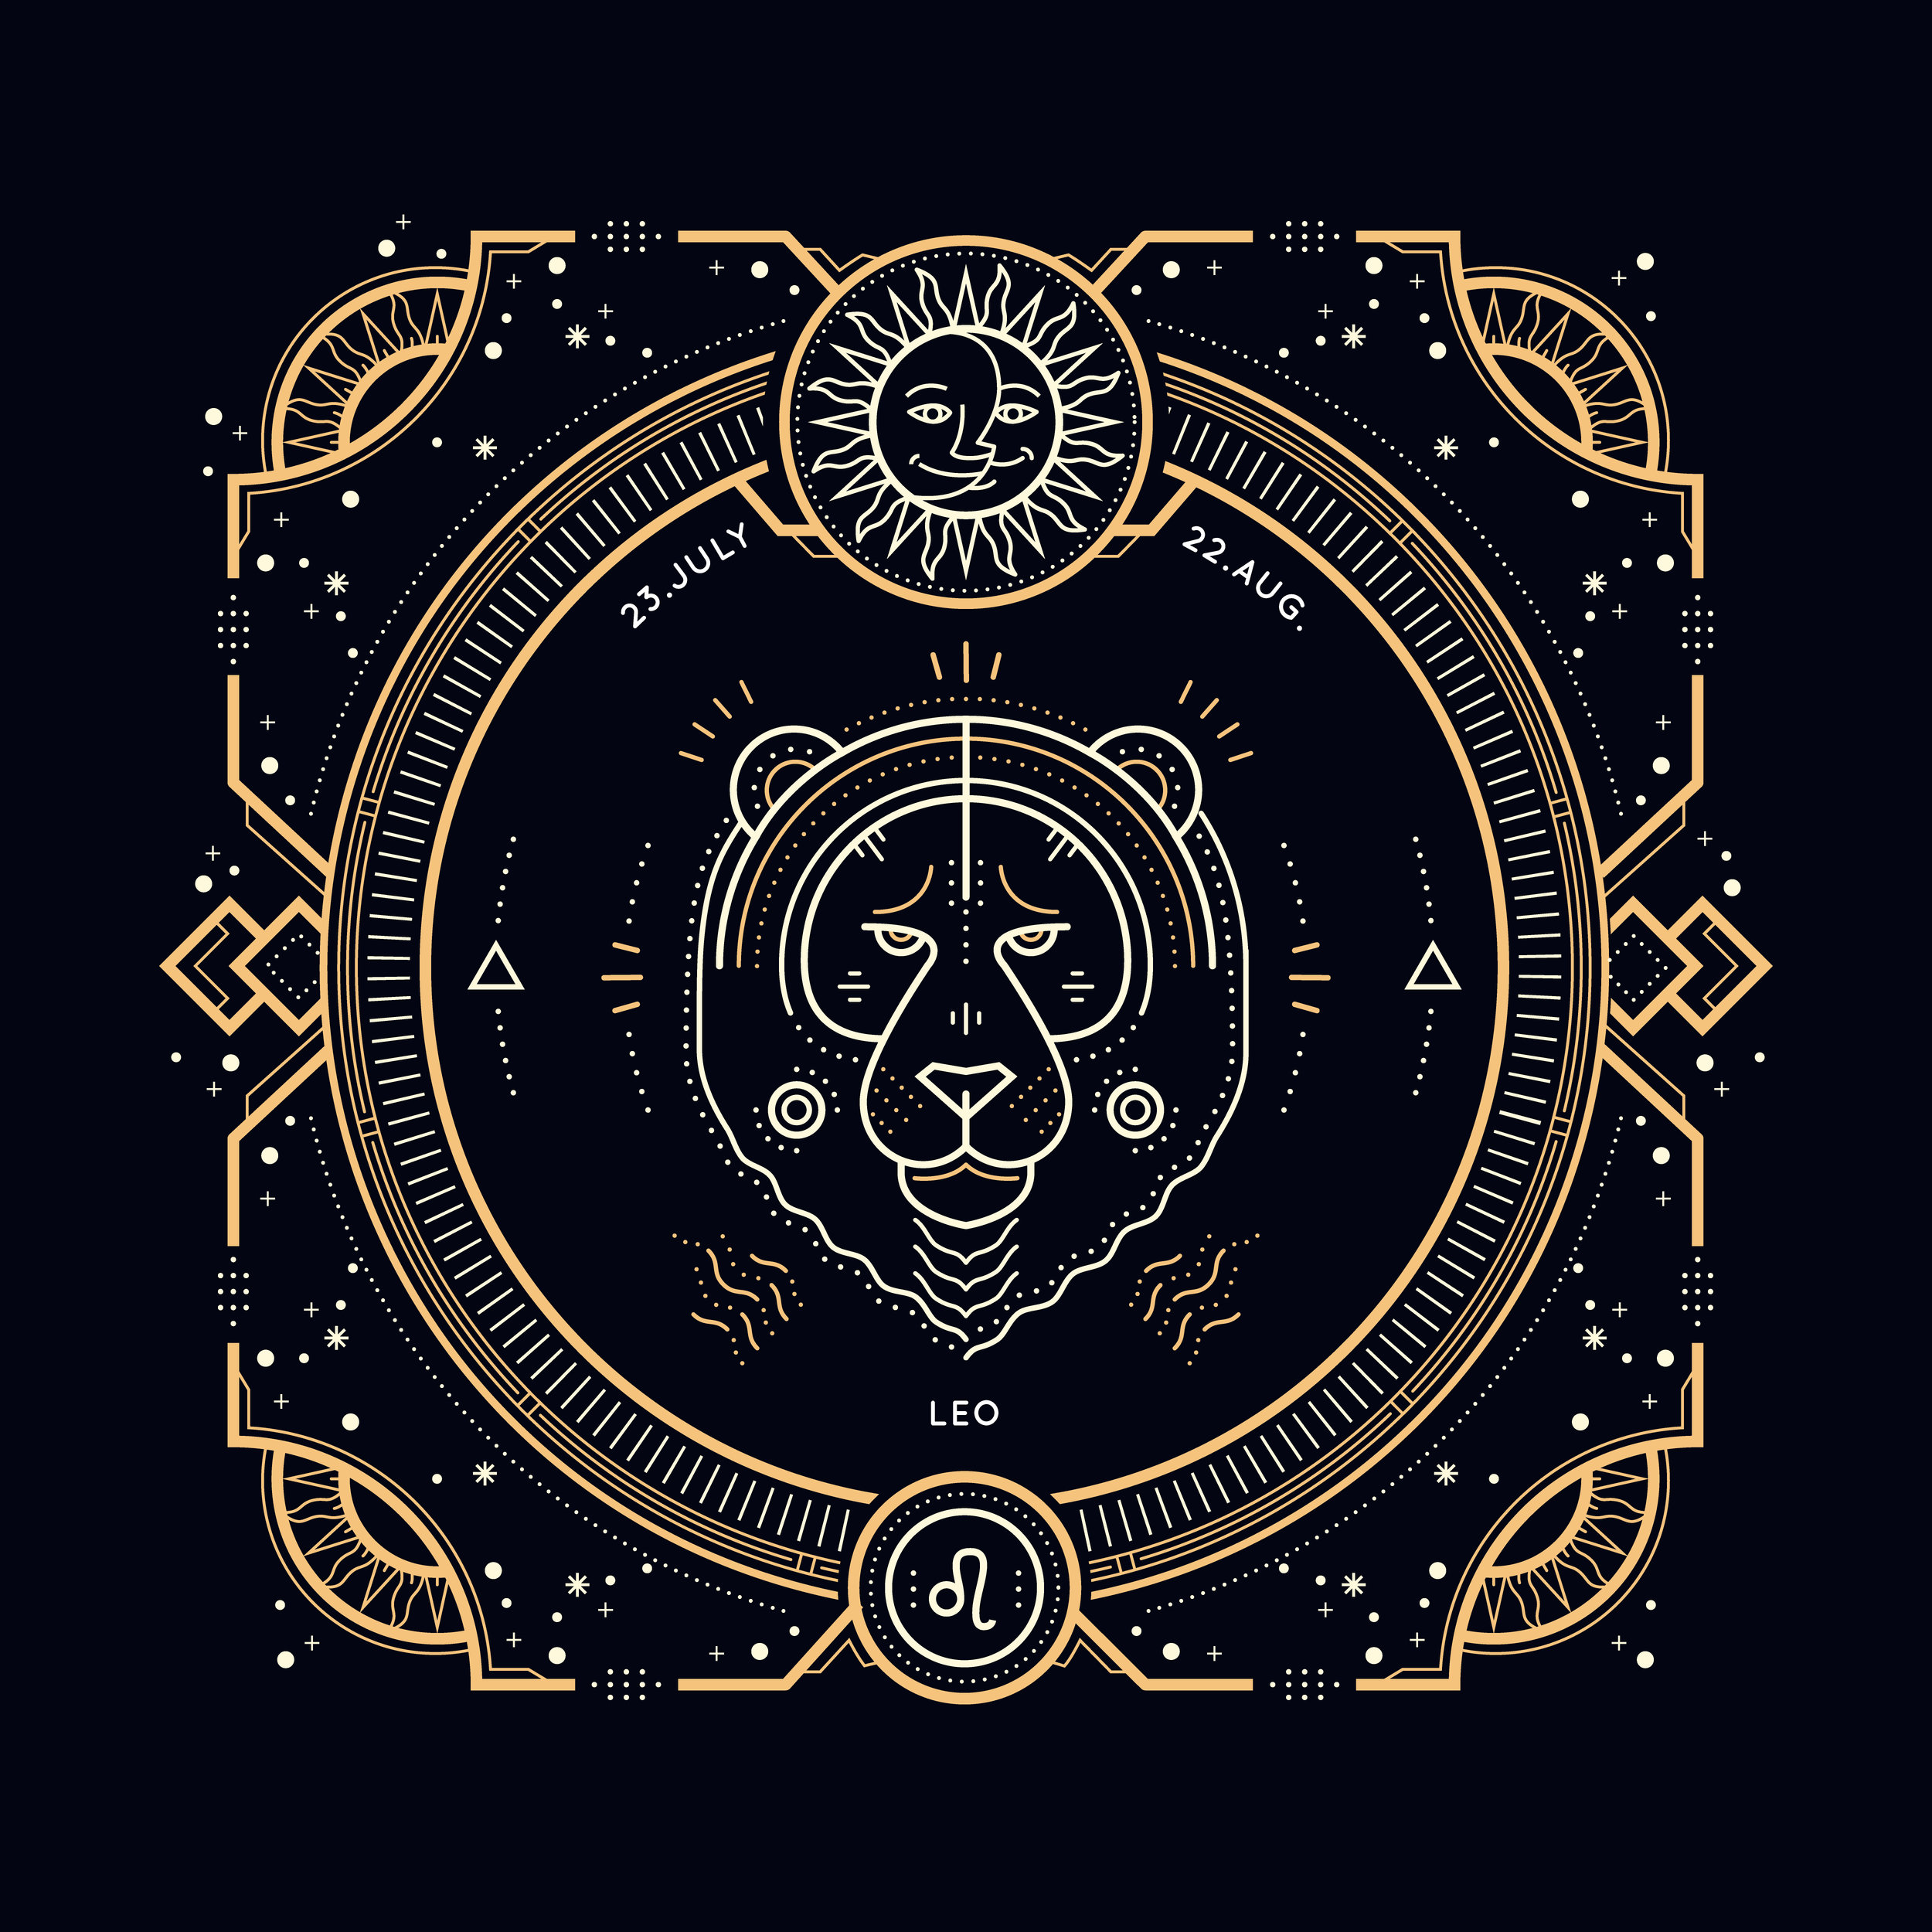 Zodiac-signs-black-gold_Leo.jpg